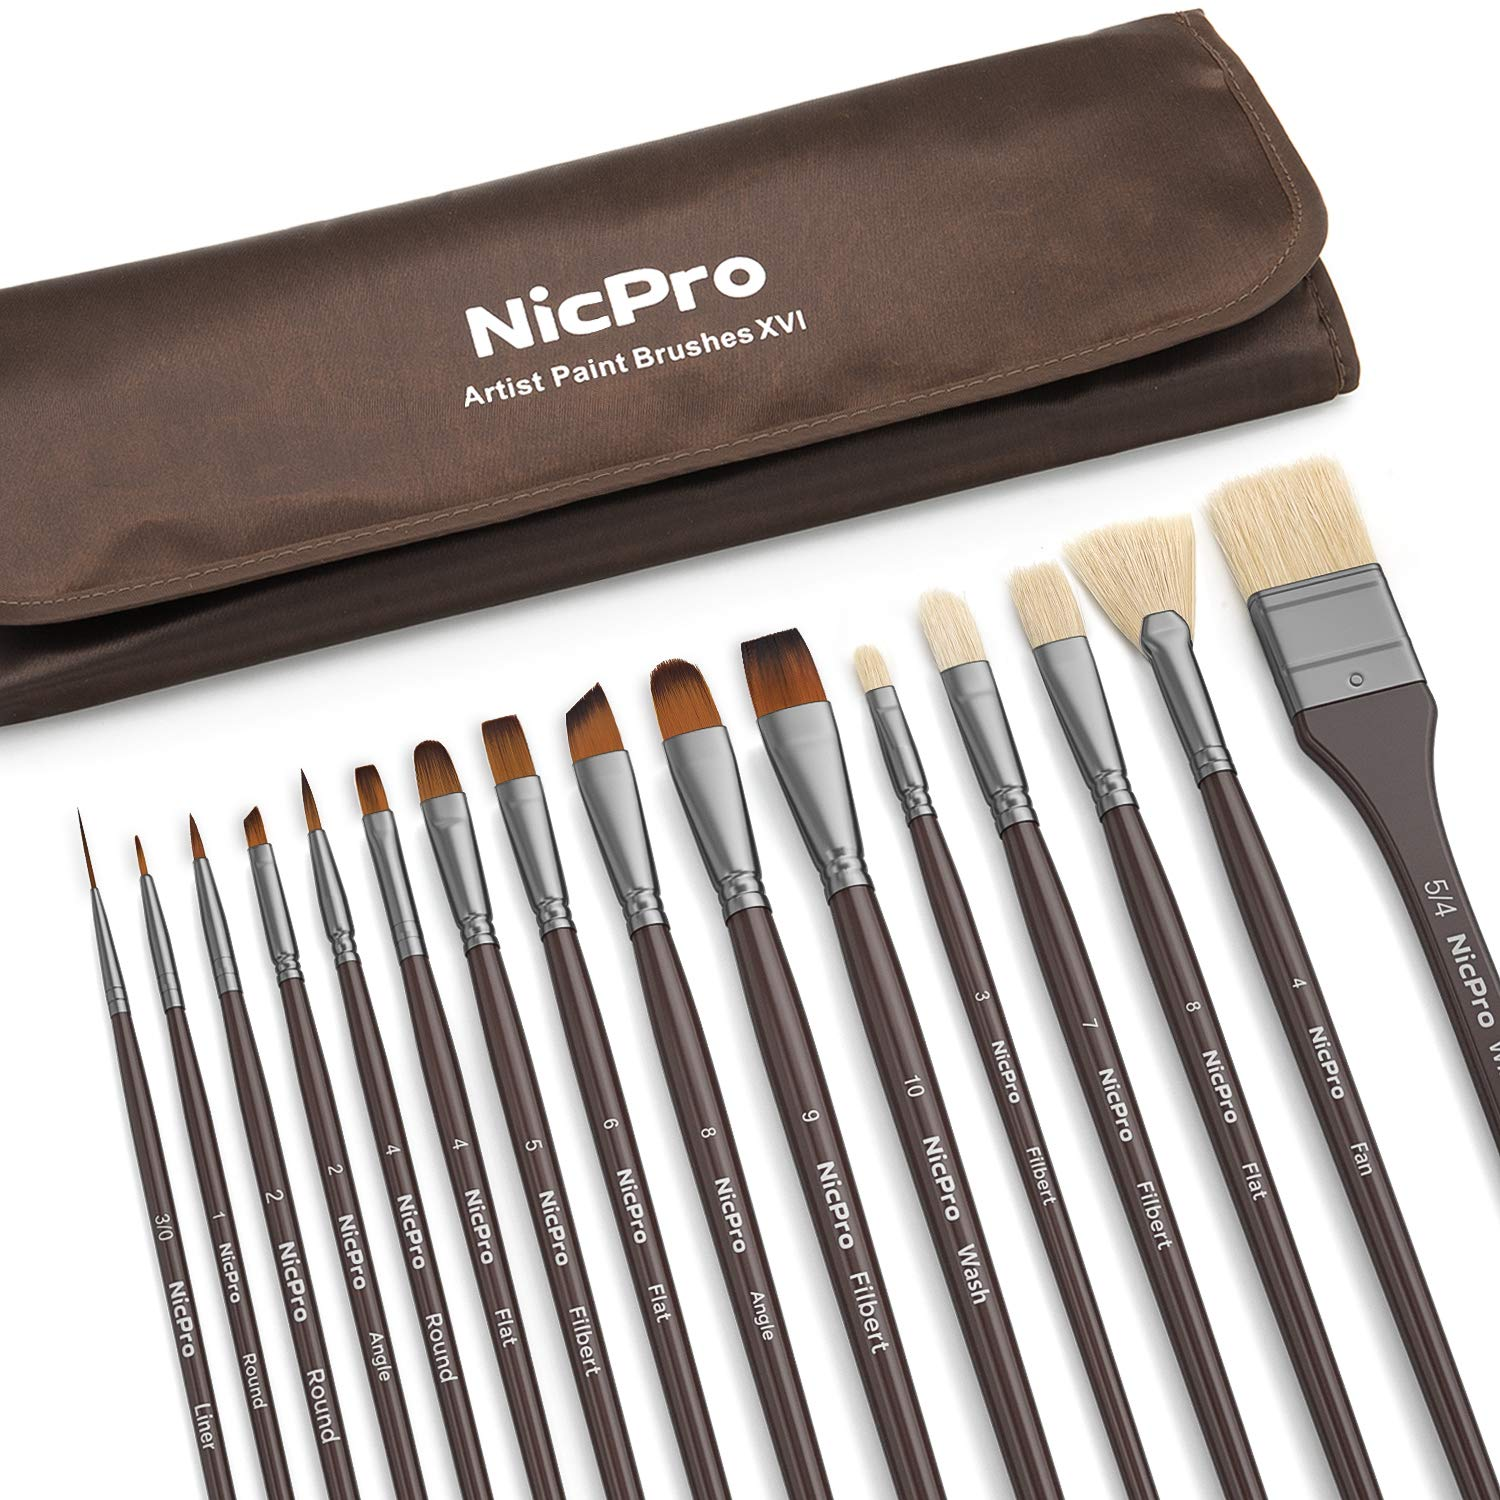 Nicpro 10 PCS Paint Brush Set Round Pointed Tip Artist Painting Brushes for Watercolor Acrylic Oil, Art Paintbrush